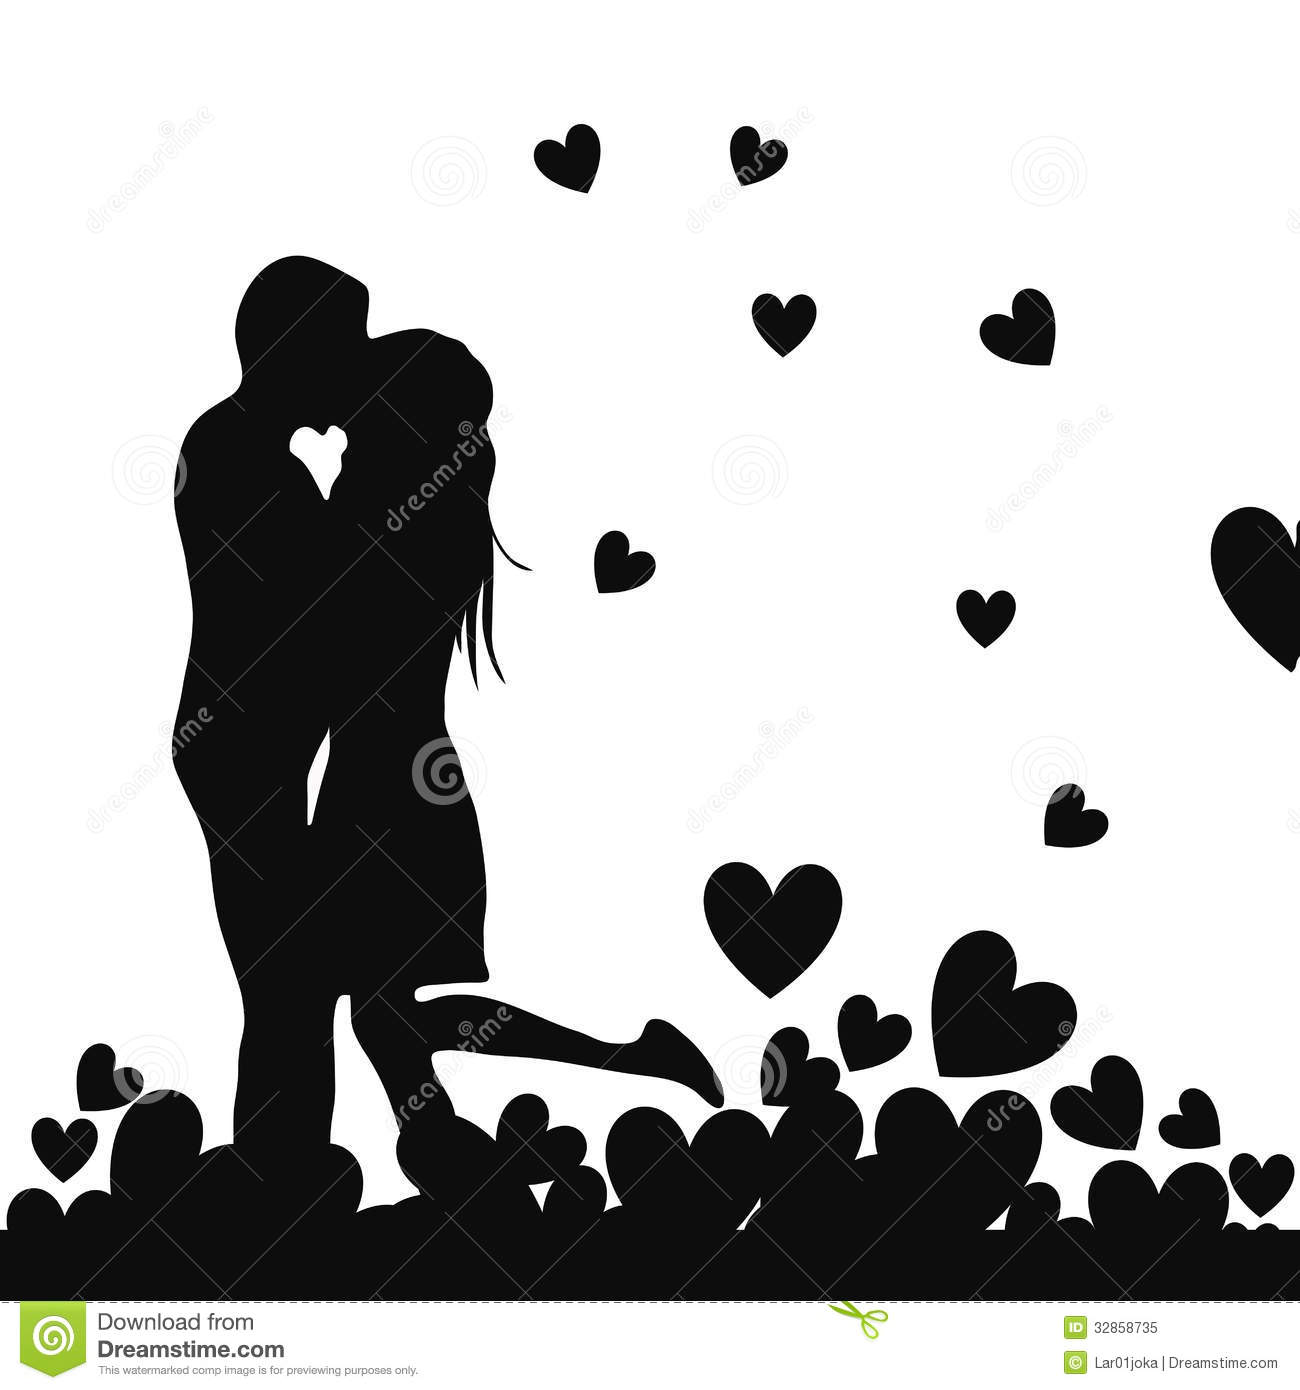 Love Each Other When Two Souls: Truly Love In Valentines Day Royalty Free Stock Photo